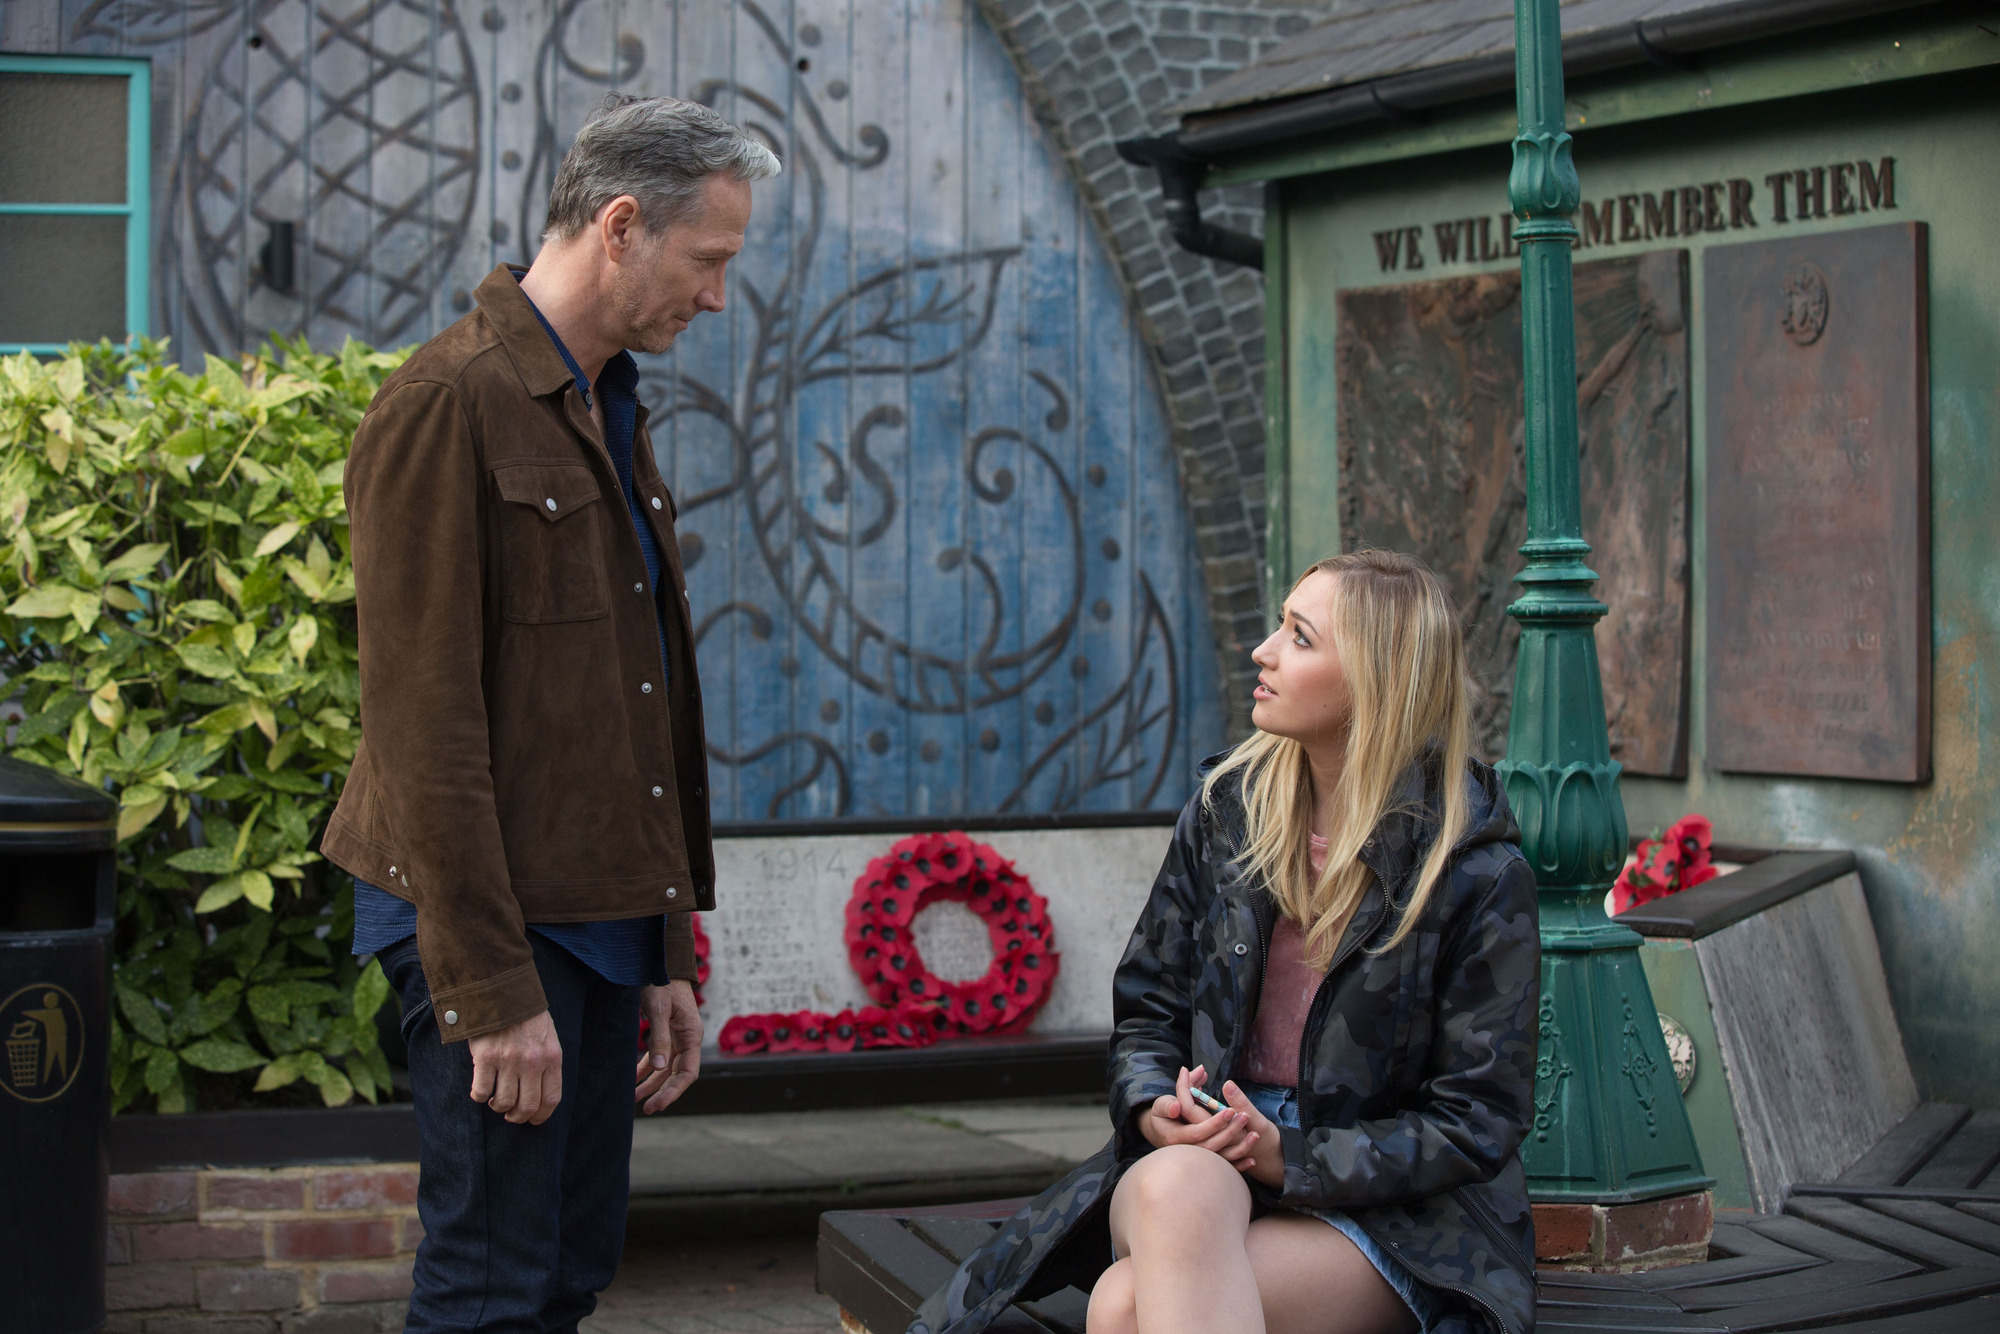 EastEnders spoilers: Ray Kelly threatens Louise Mitchell when she accuses him of making a pass